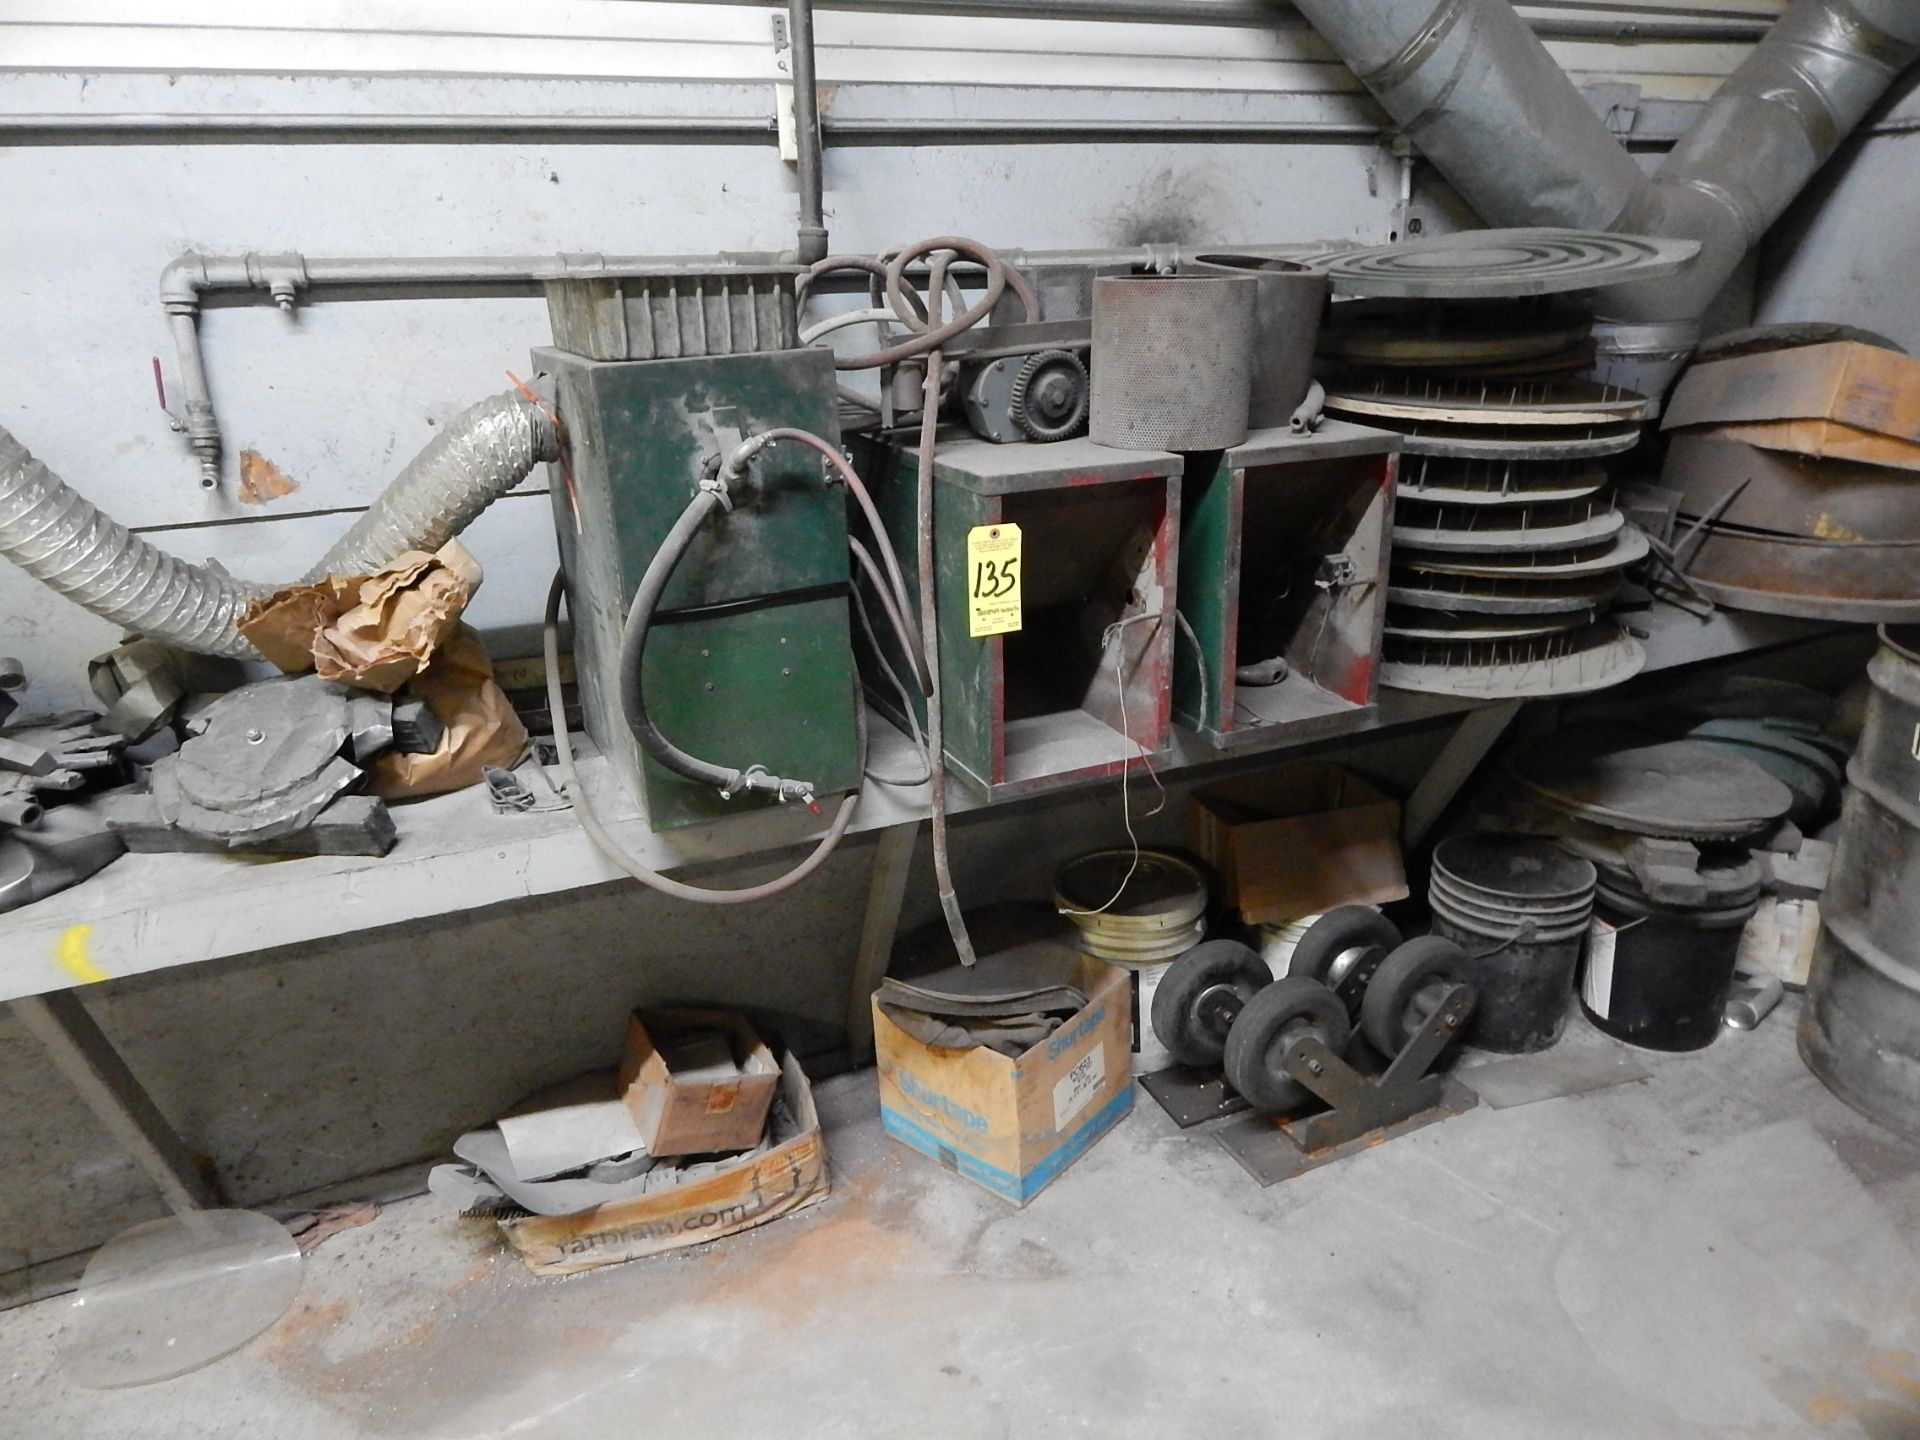 Lot 135 - Scrap Steel and Miscellaneous